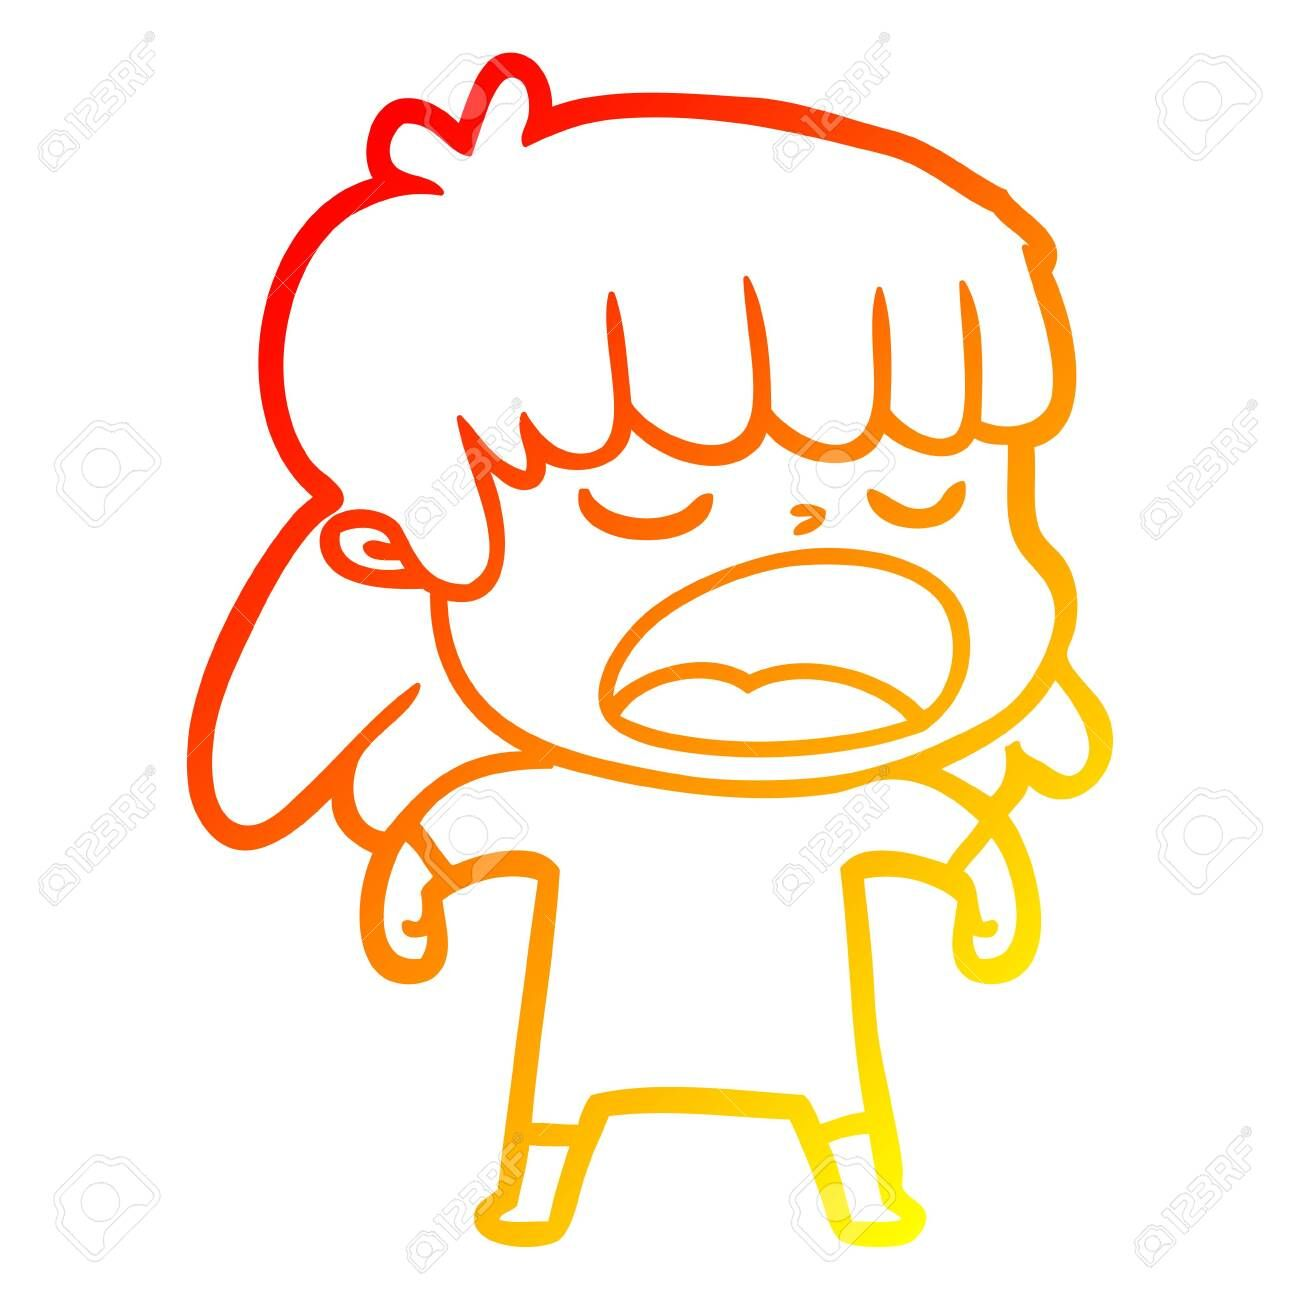 warm gradient line drawing of a cartoon woman talking loudly ,